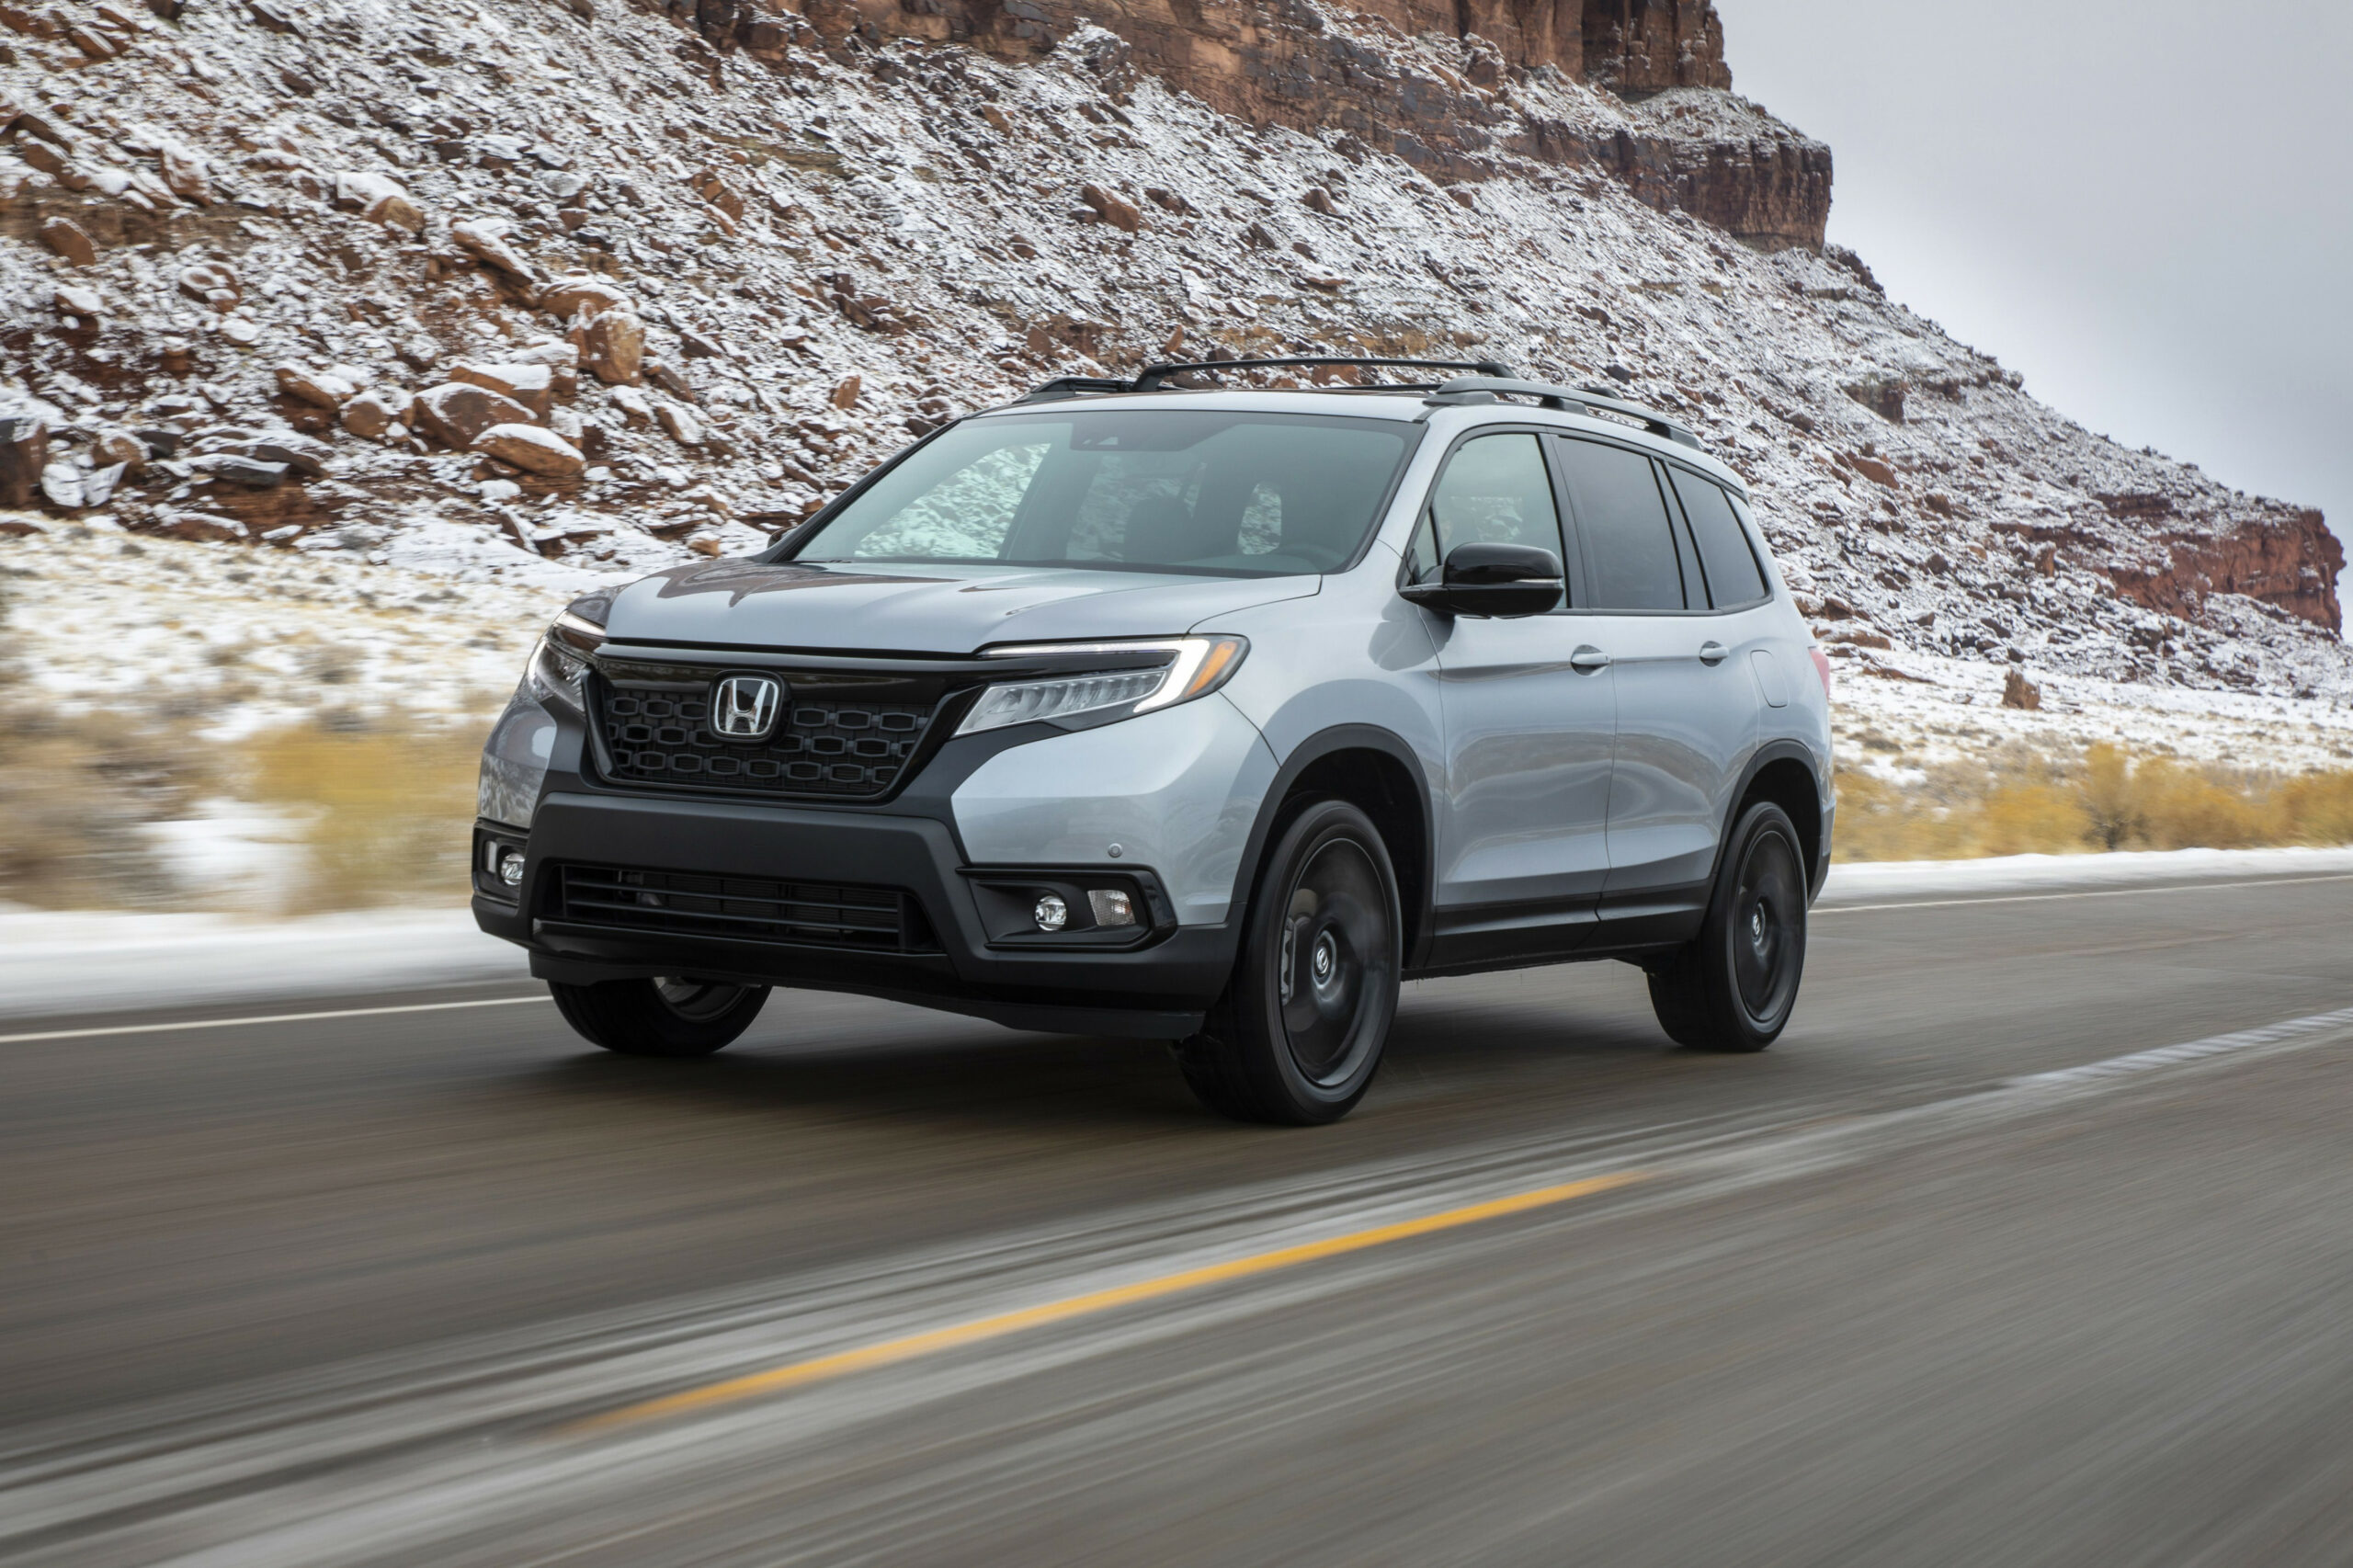 6 Honda Passport Review, Pricing, and Specs